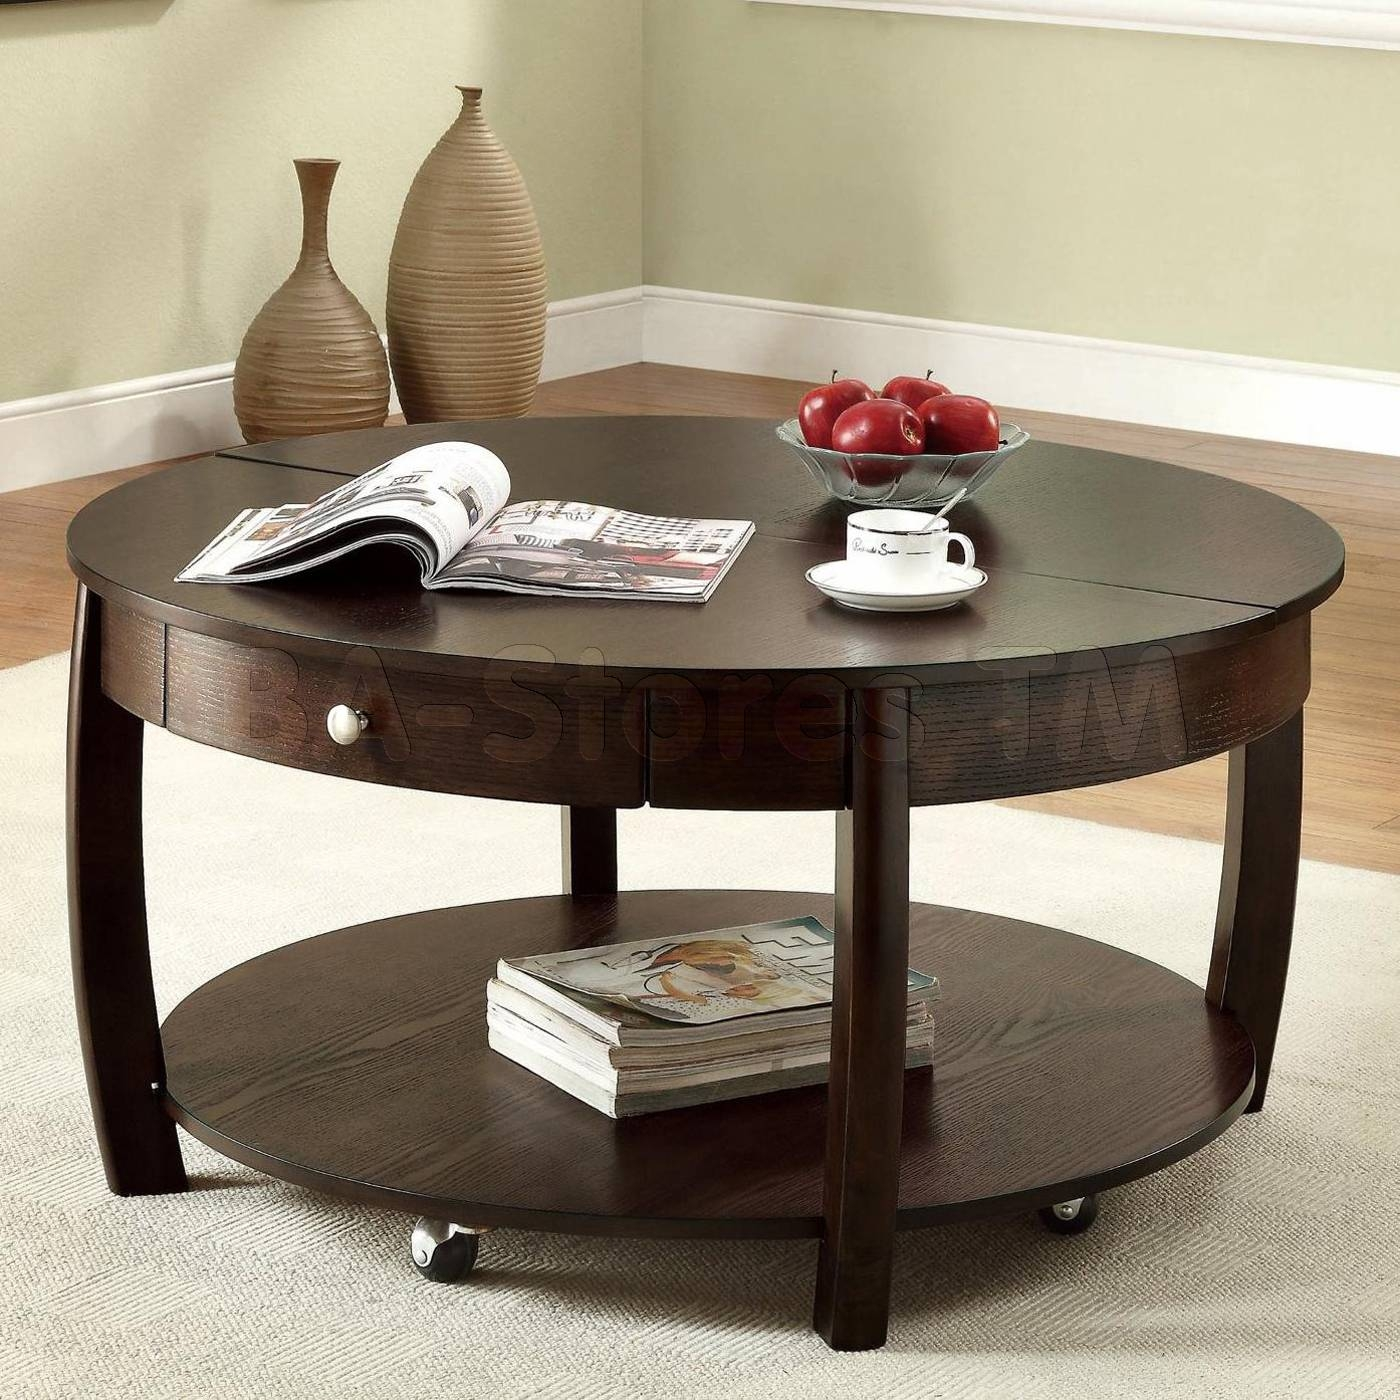 Artistic Small Round Coffee Table - Home Design inside Rounded Corner Coffee Tables (Image 4 of 30)